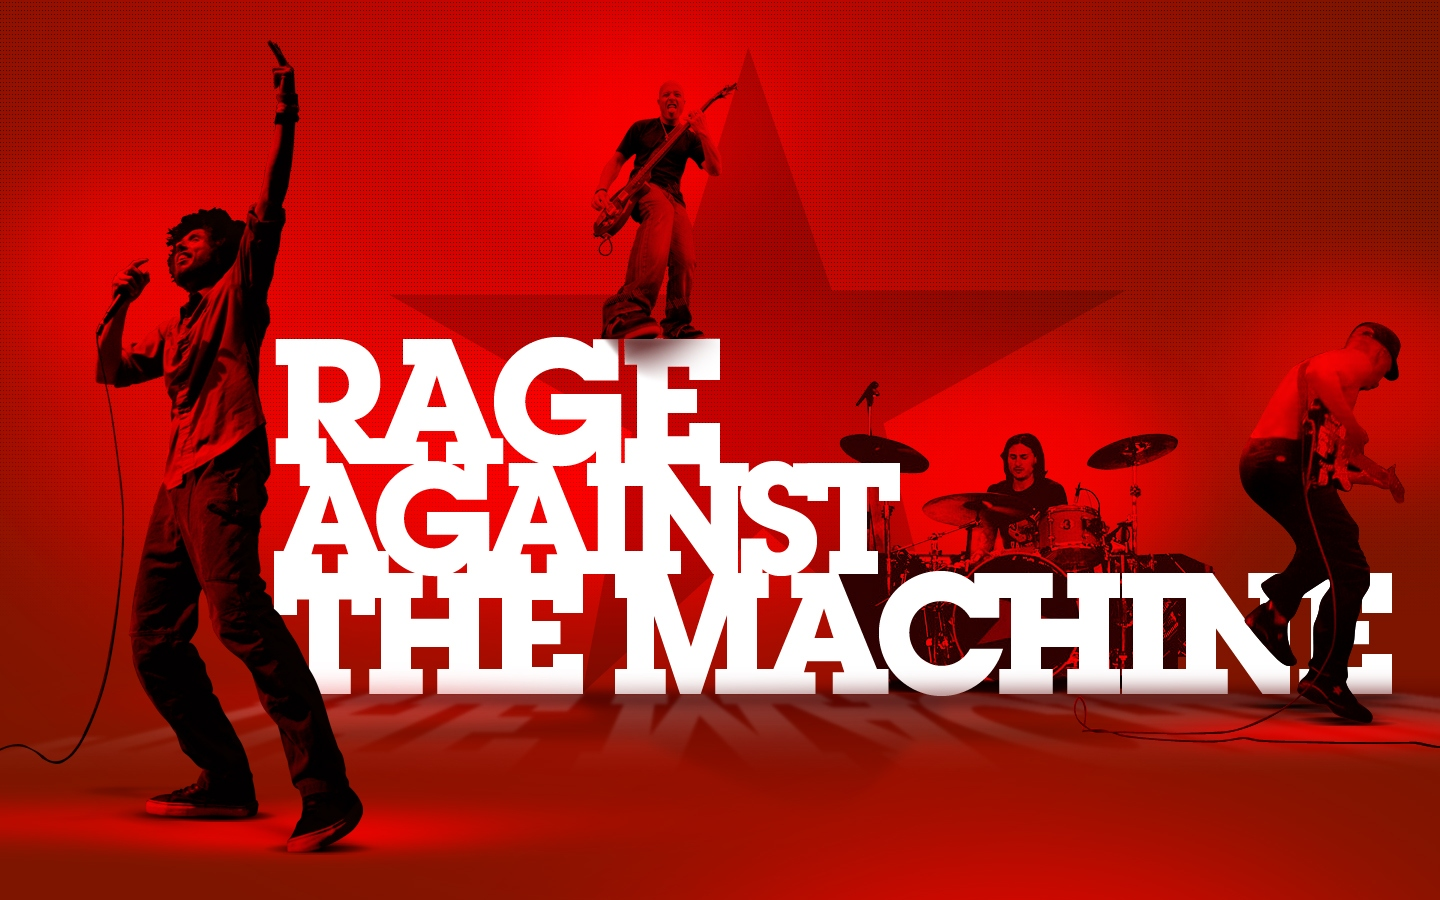 mashababko: Hd Wallpaper Rage Against The Machine